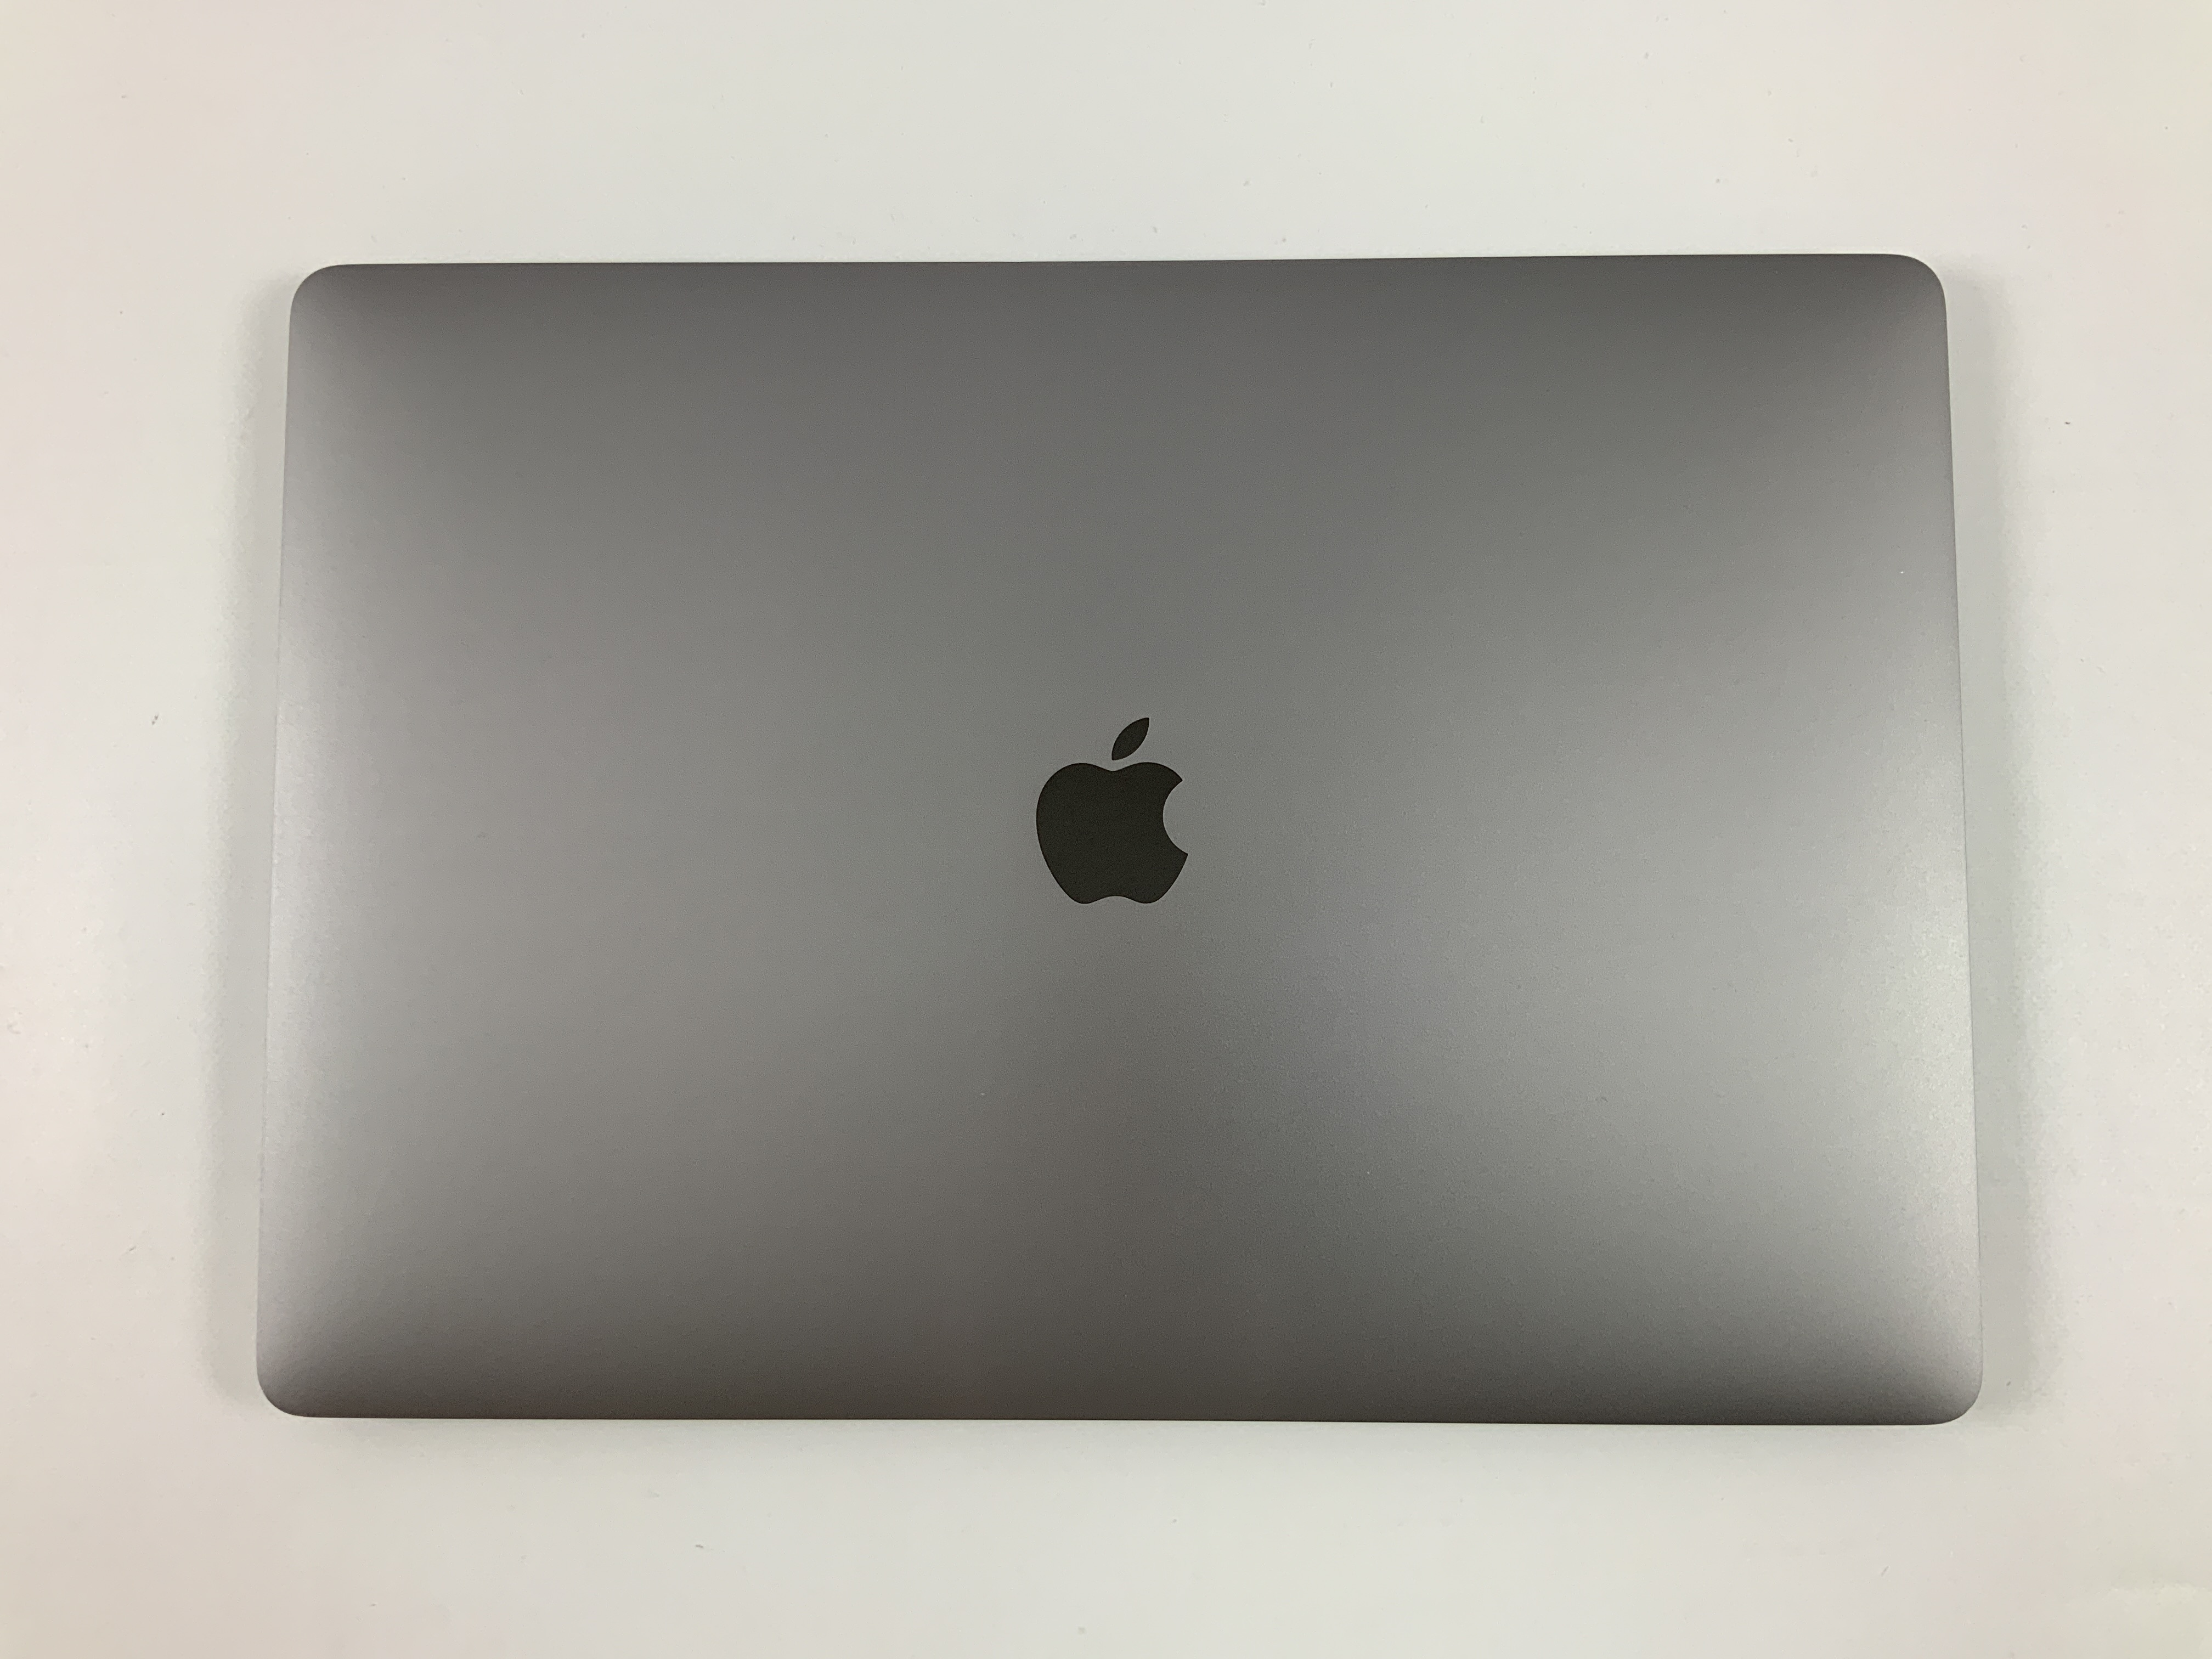 "MacBook Pro 15"" Touch Bar Late 2016 (Intel Quad-Core i7 2.6 GHz 16 GB RAM 512 GB SSD), Space Gray, Intel Quad-Core i7 2.6 GHz, 16 GB RAM, 512 GB SSD, Afbeelding 2"